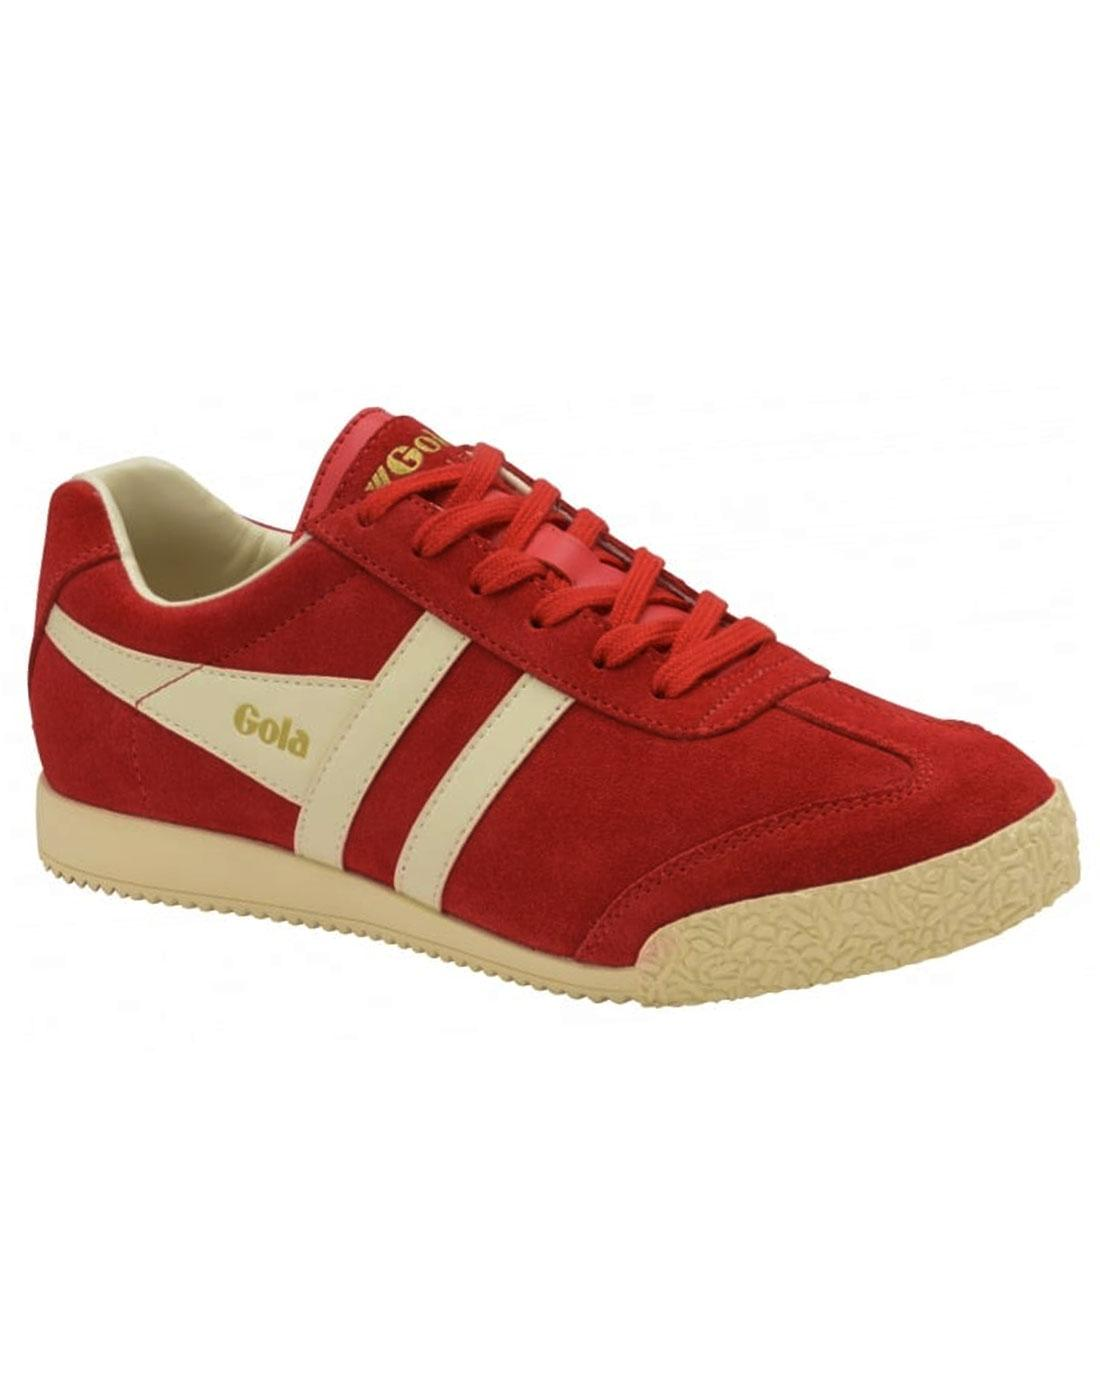 GOLA Harrier Womens Retro 70s Suede Trainers RED